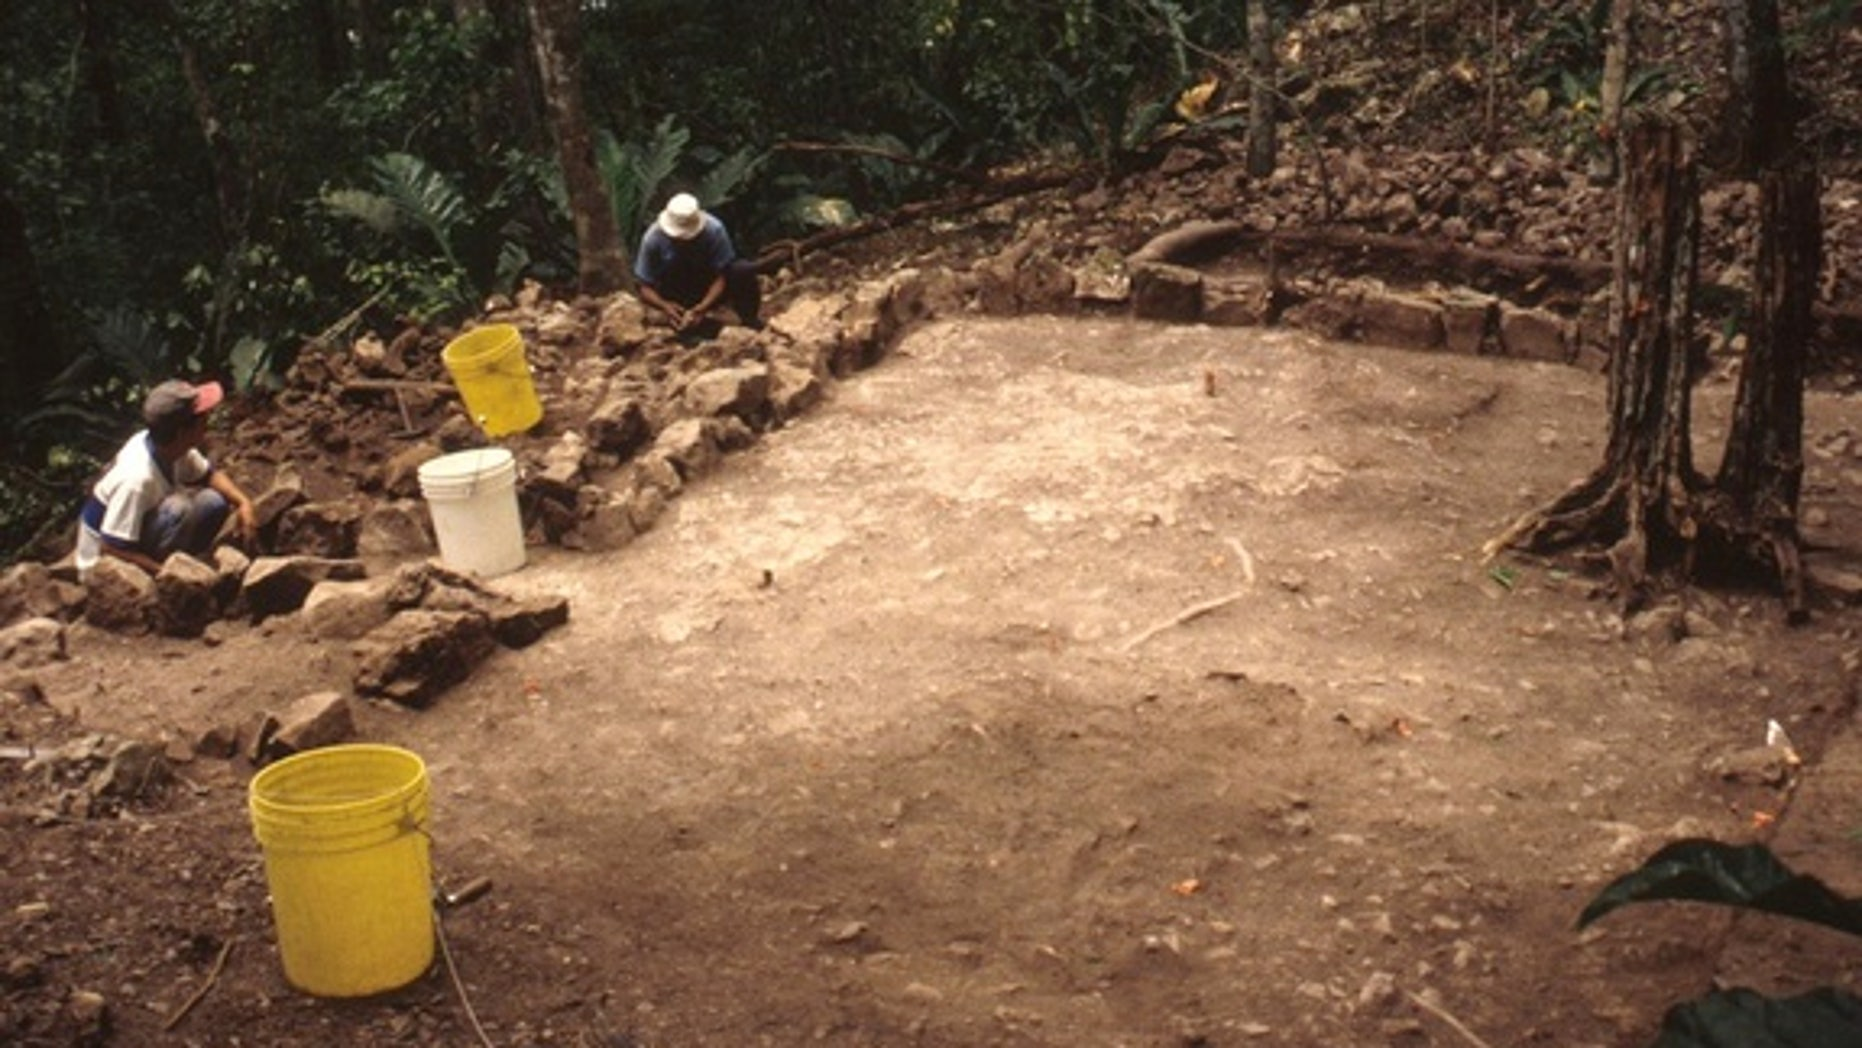 """Around 500 years ago, in this Maya temple at Zacpetén in Guatemala, a person was cut open using an obsidian arrowhead, and their blood was spilled in a ceremony that may have used a person's """"life force"""" to feed the gods."""